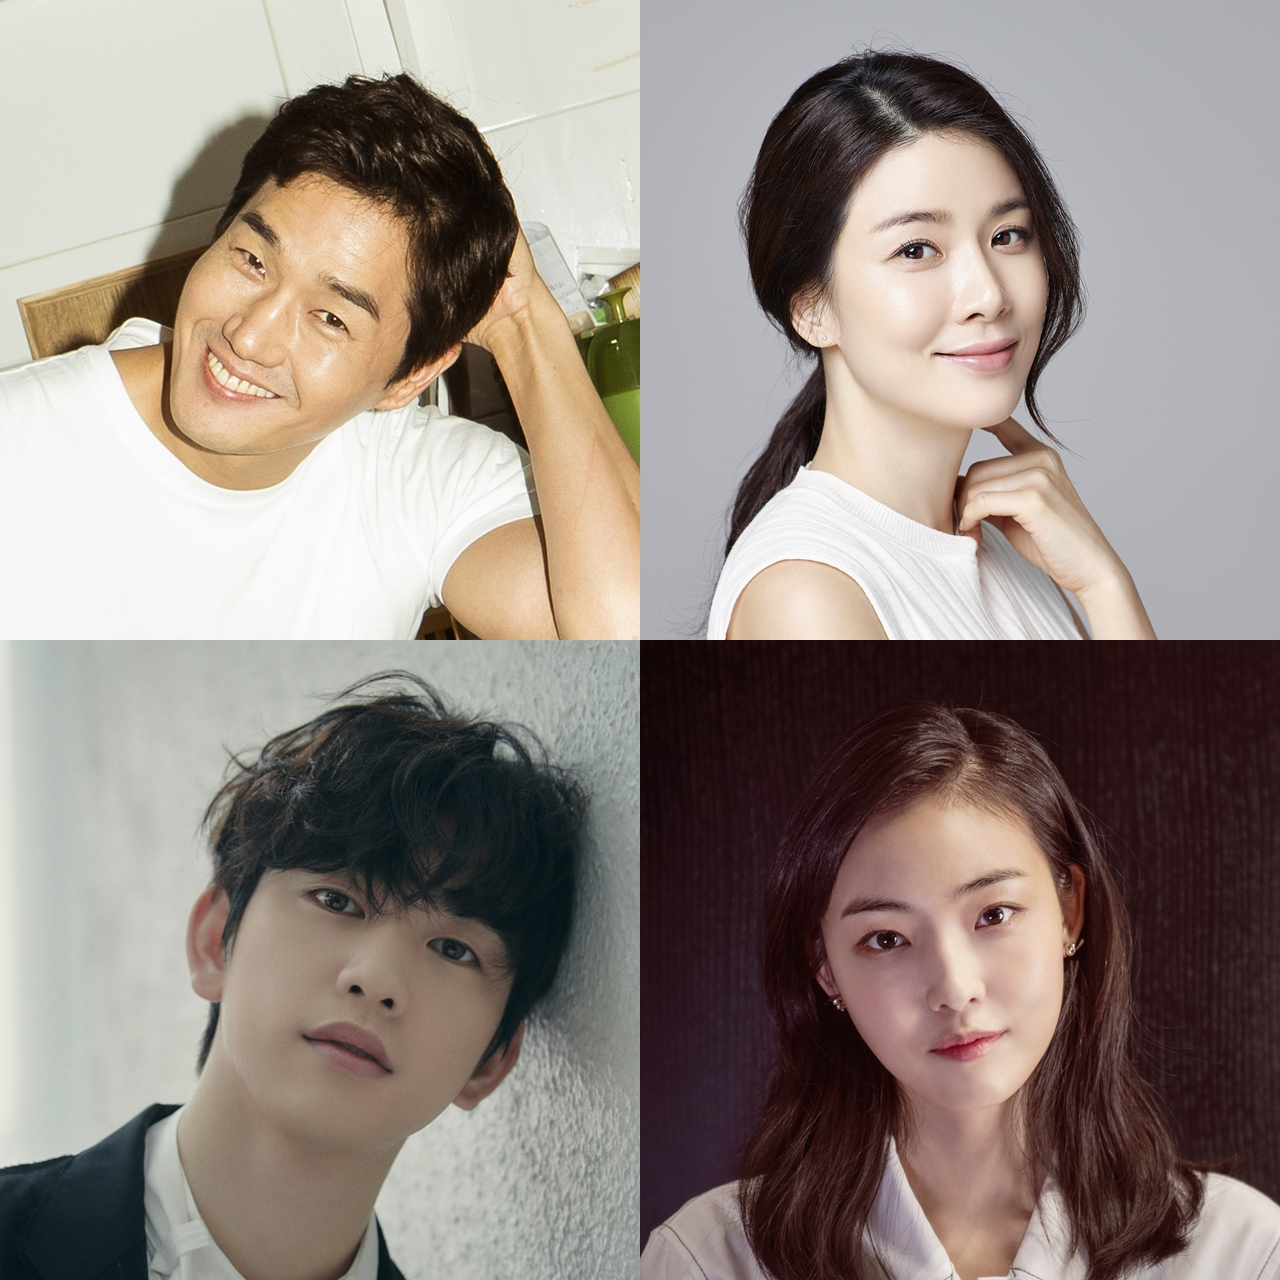 Yoo Ji-tae and Lee Bo-young to confirm 'Hwayang Softening' in tvN  First broadcast in April (official)